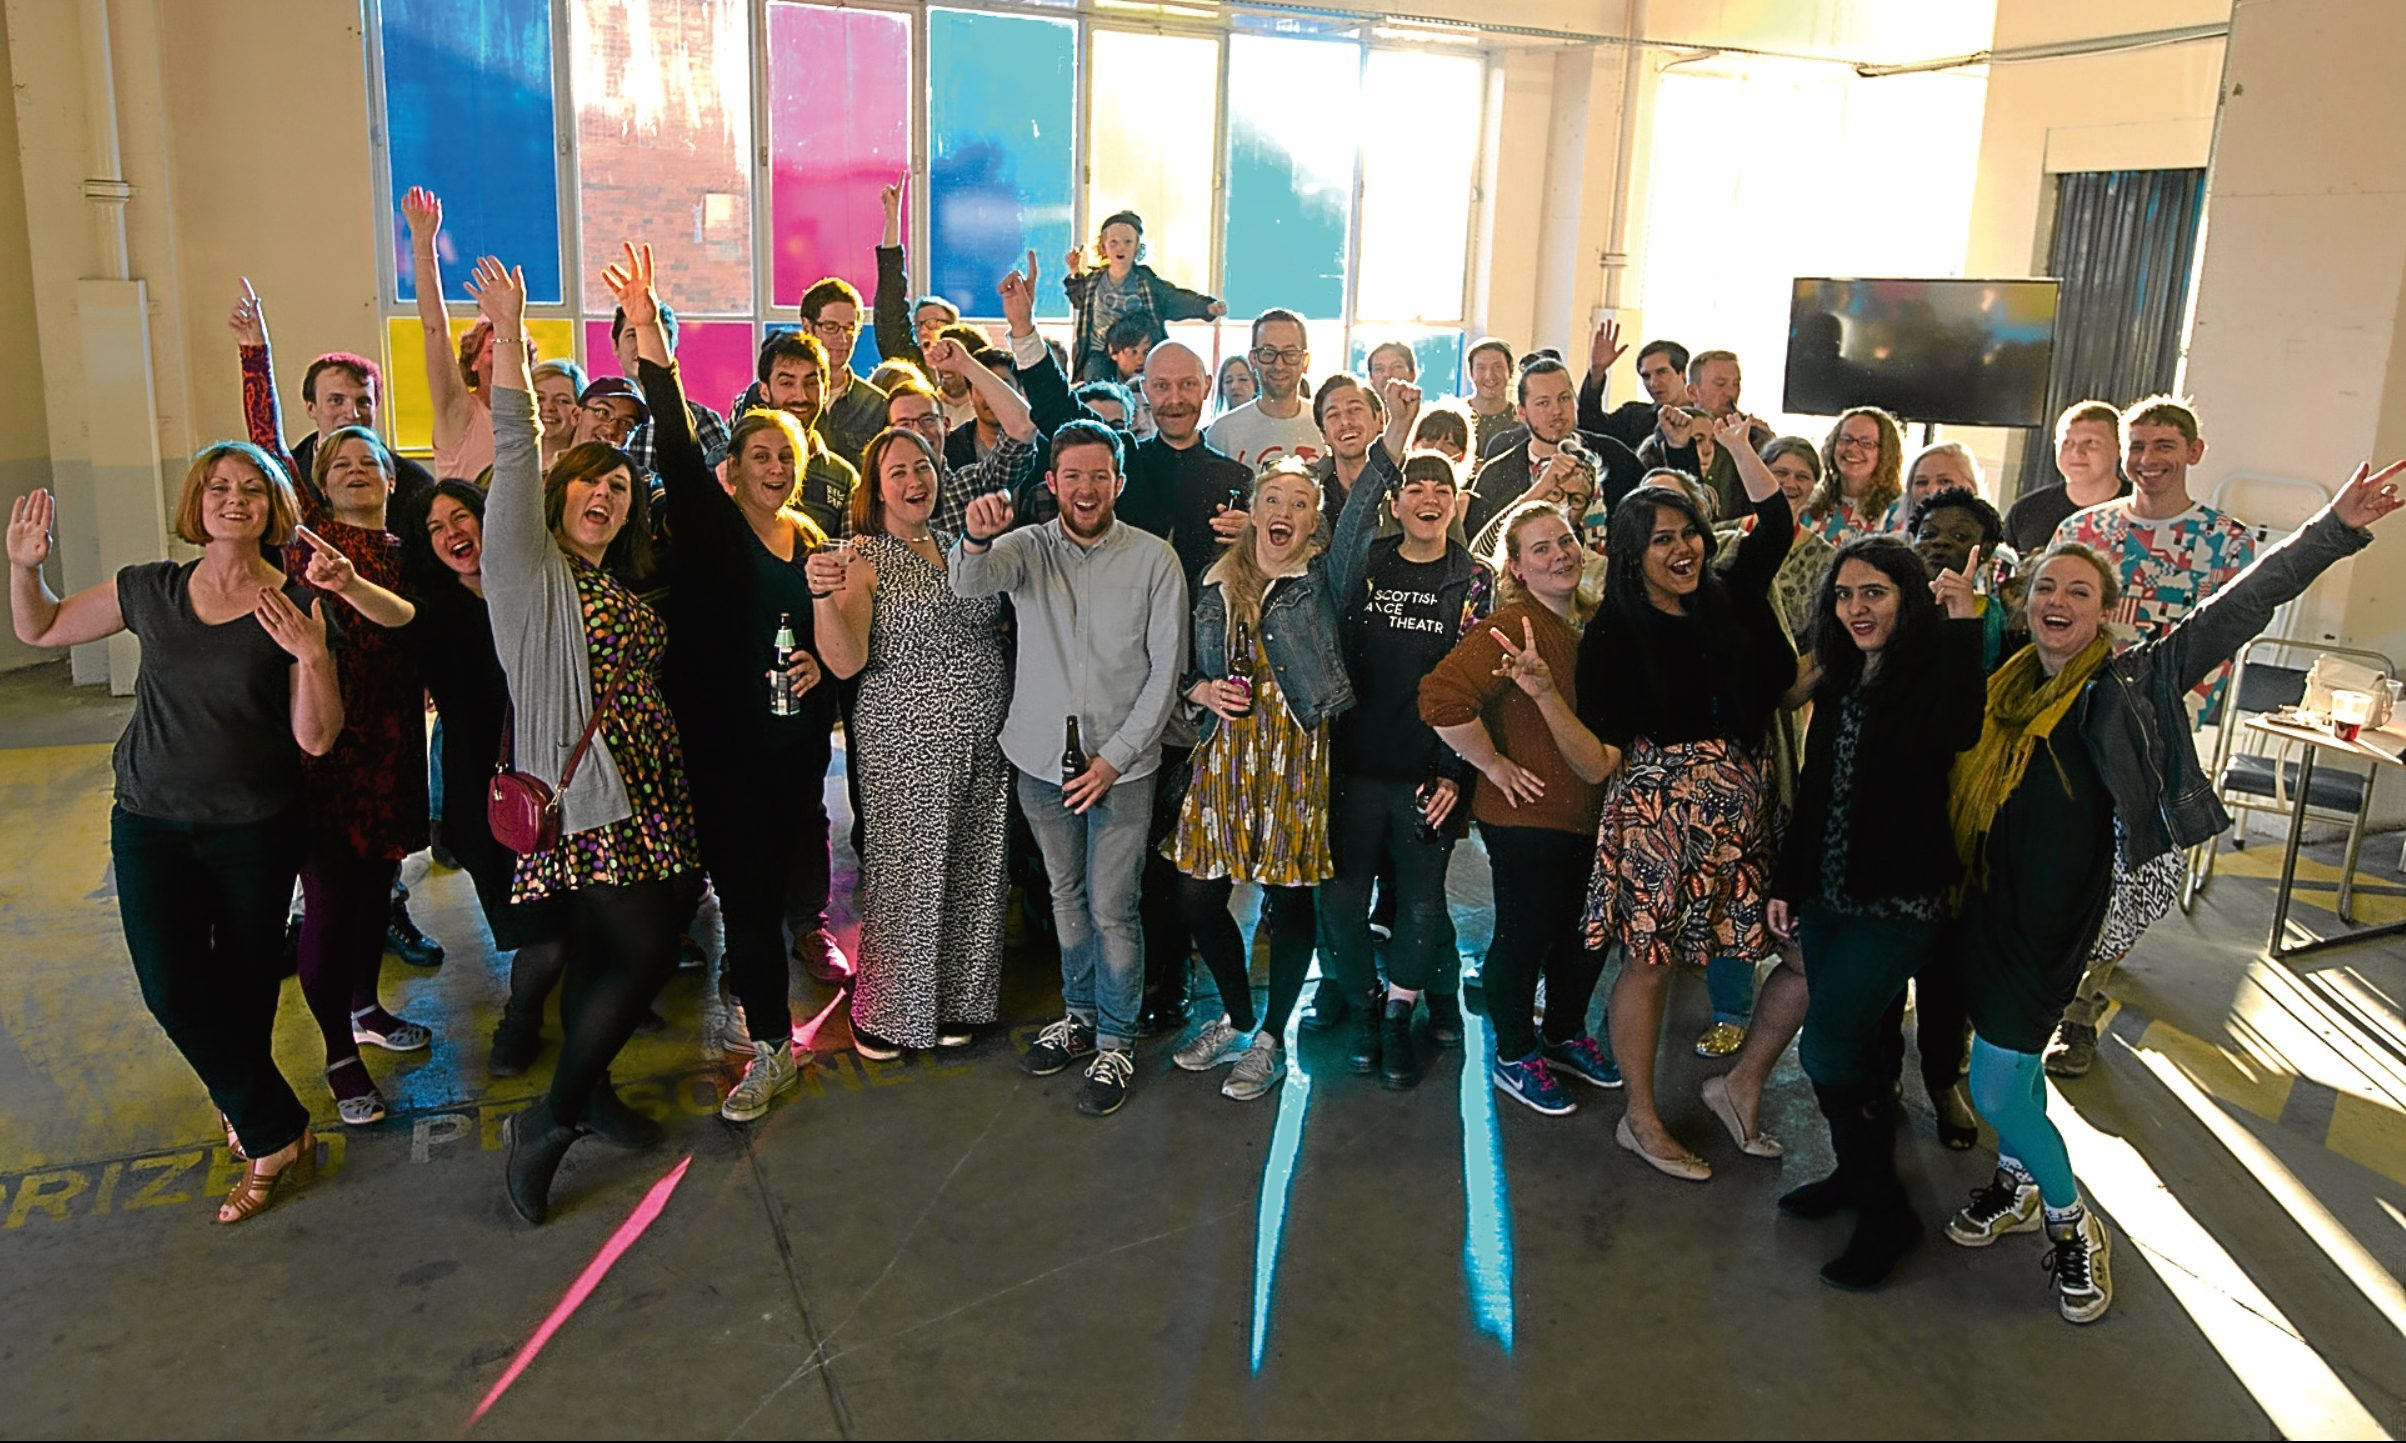 An appeal has been made for people from all walks of life to take part in the Dundee Design Festival. Pictured are volunteers at last year's event.